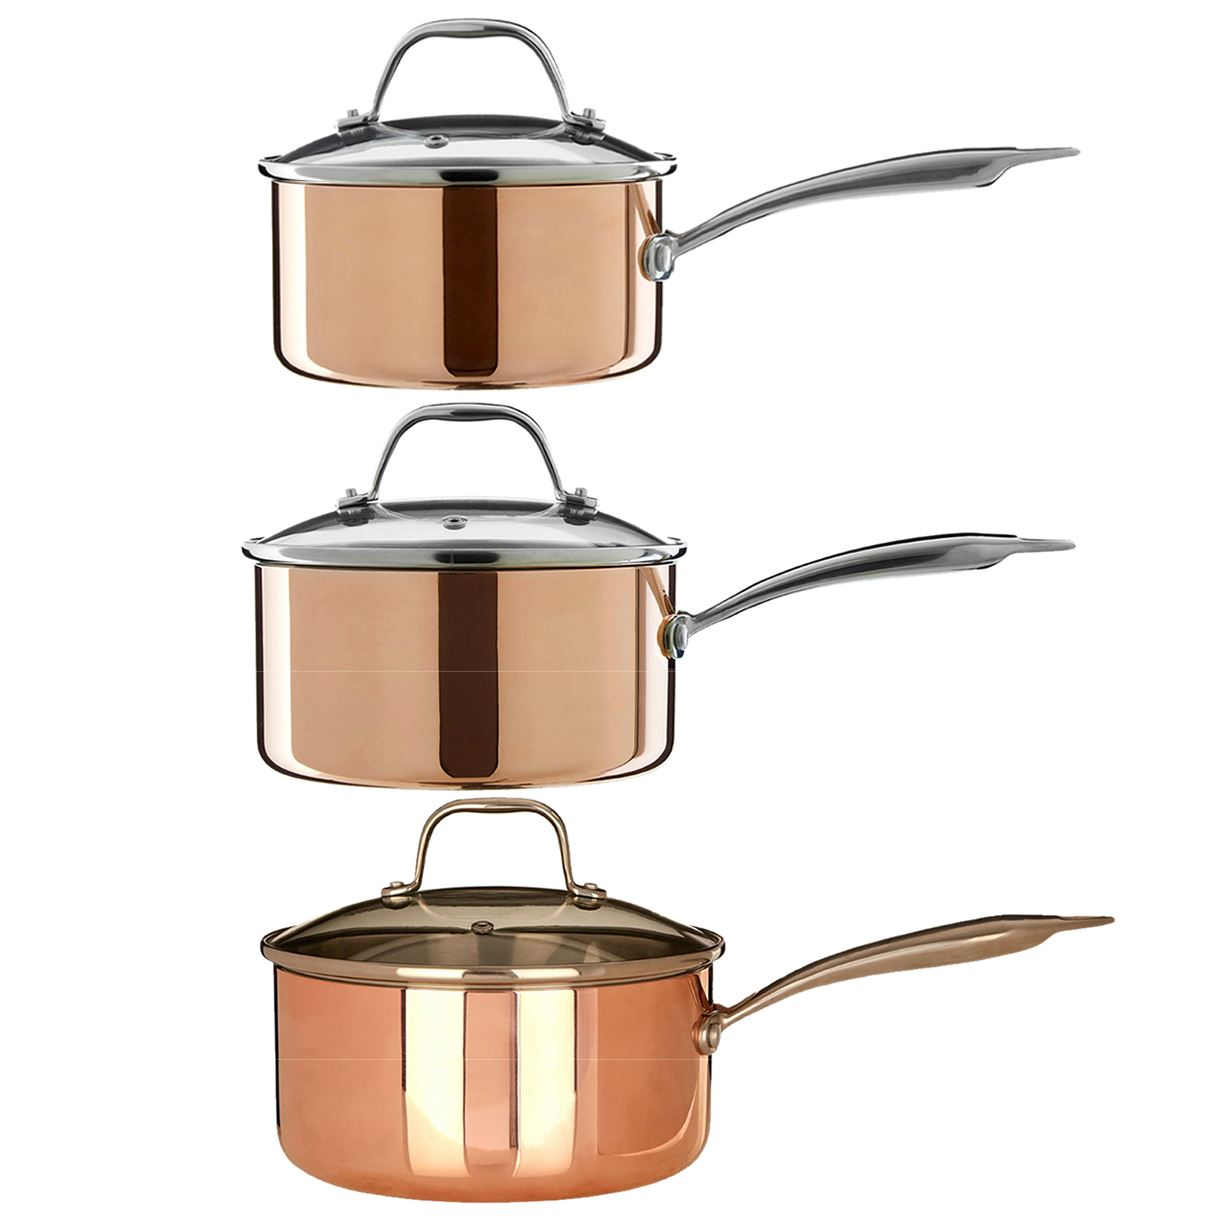 Minerva 3 Piece Saucepan Cookware Set Copper/Tri Ply Pots Pans Glass ...